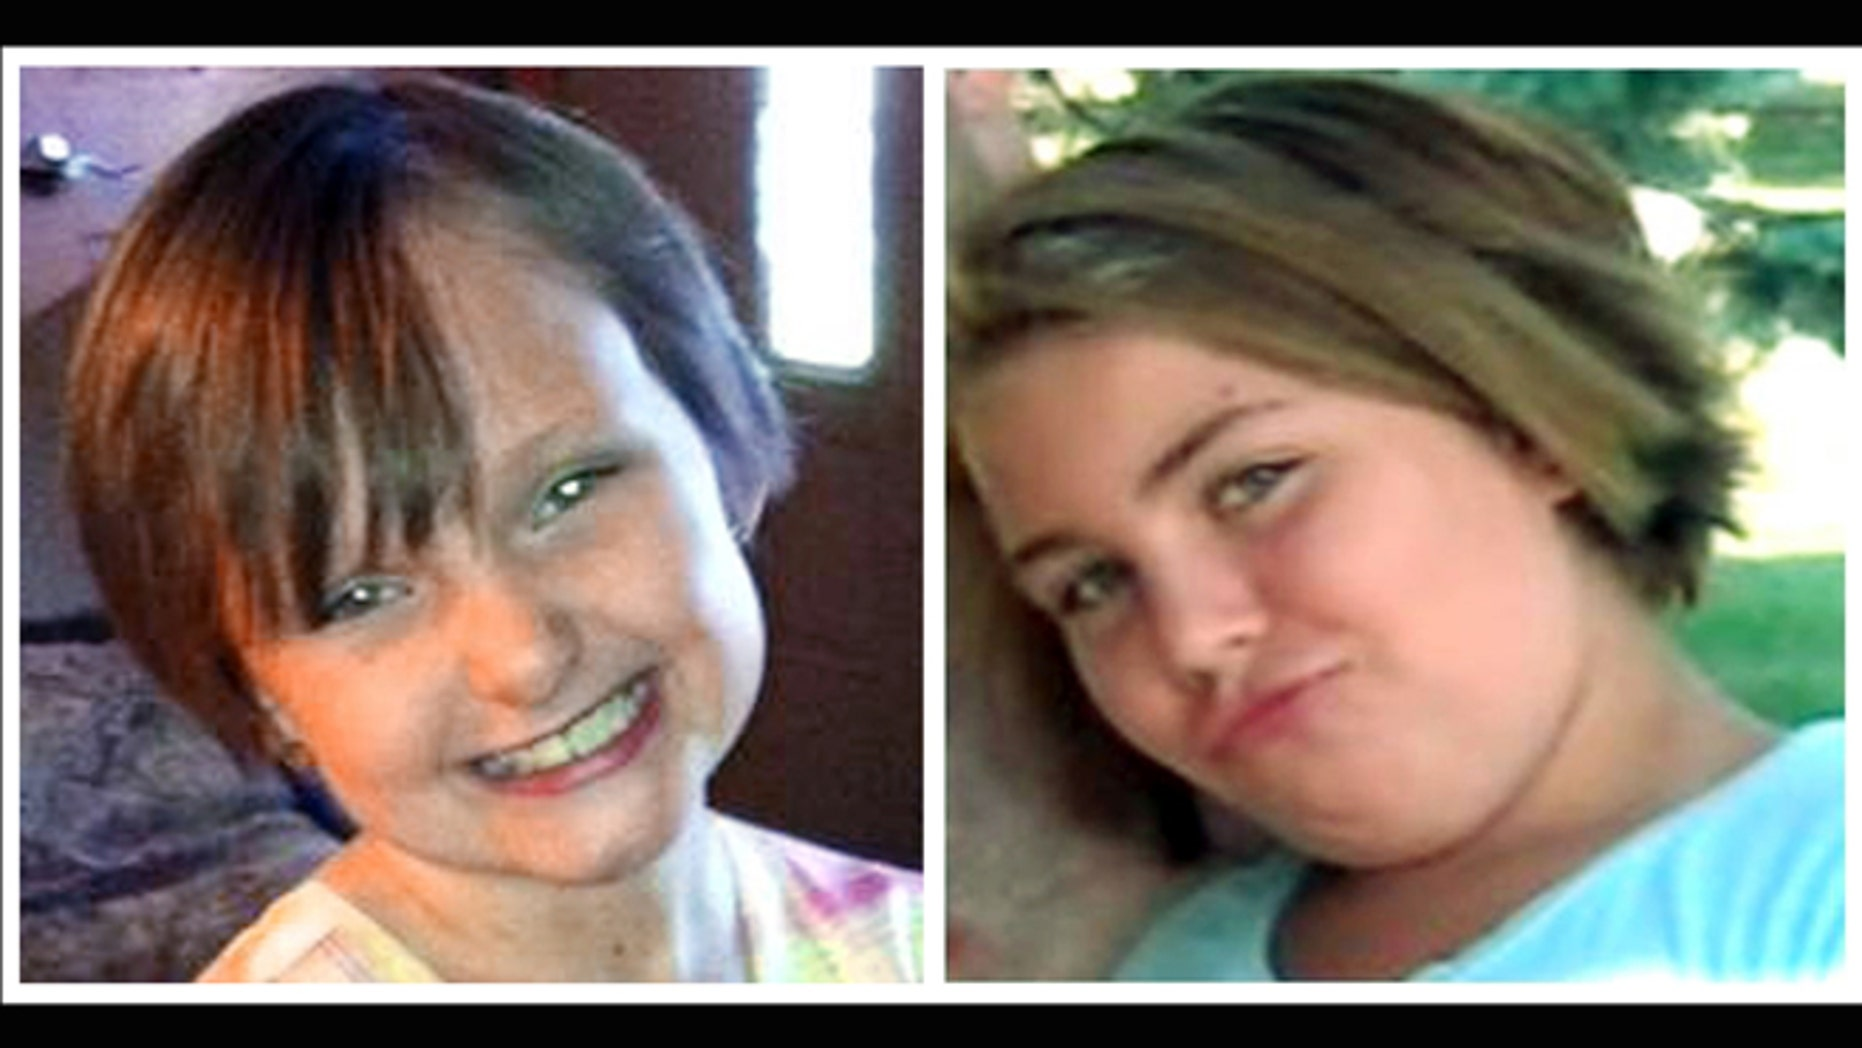 This combo made from undated photos provided by the FBI shows cousins Lyric Cook, 10, right, and Elizabeth Collins, 8, who have been missing since Friday, July 13, 2012. Authorities say hunters have found bodies believed to be two young Iowa cousins who disappeared while riding their bikes in July.